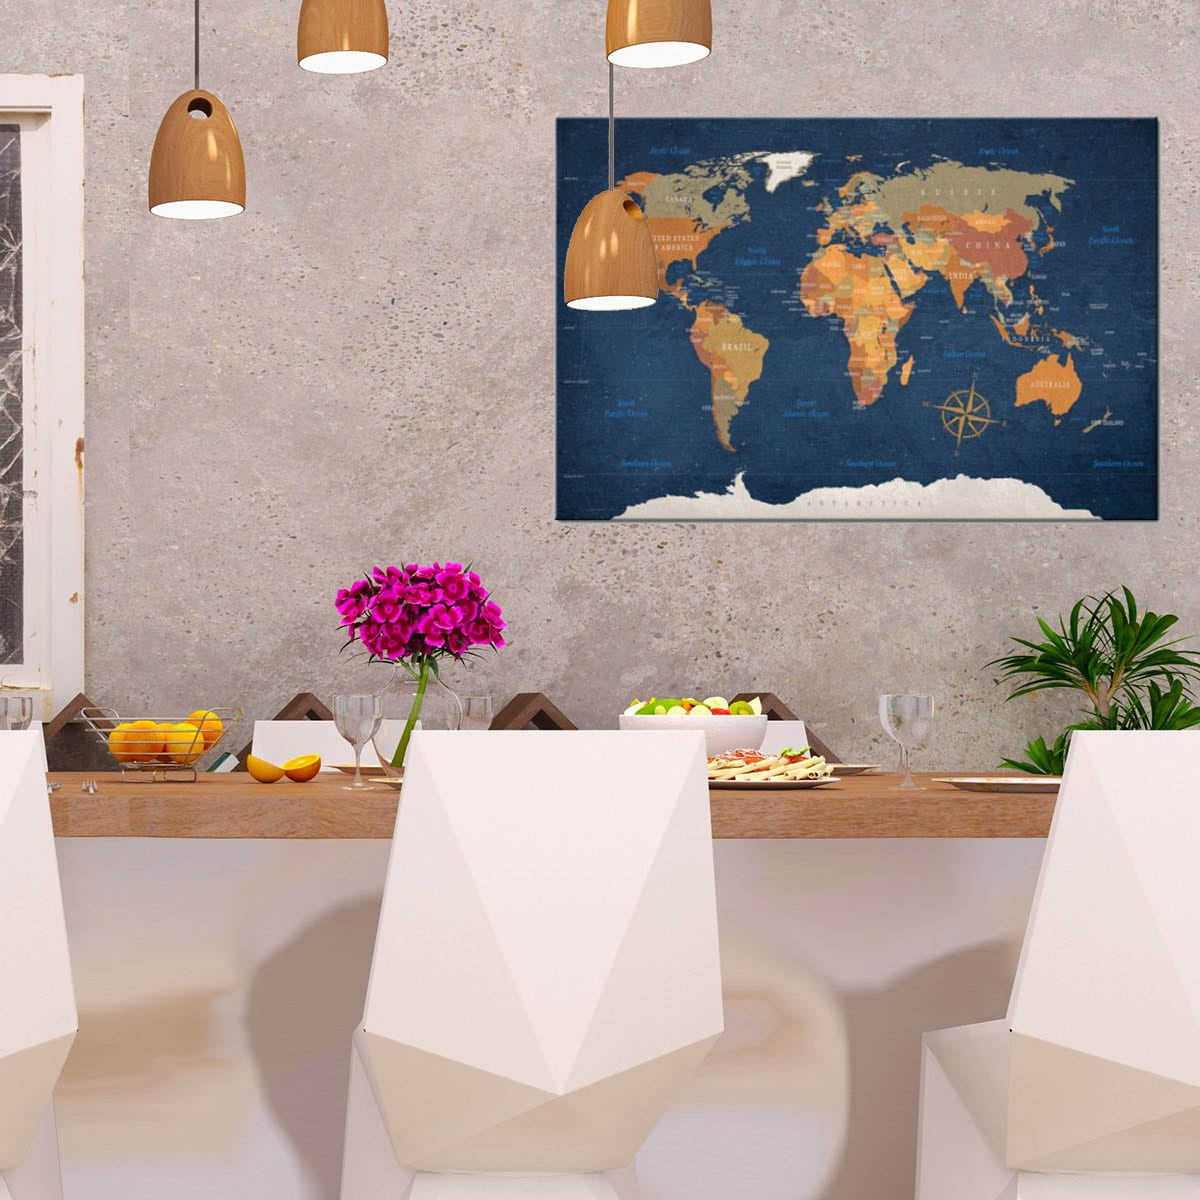 world map blue ocean on design wall canvas for a stylish interior